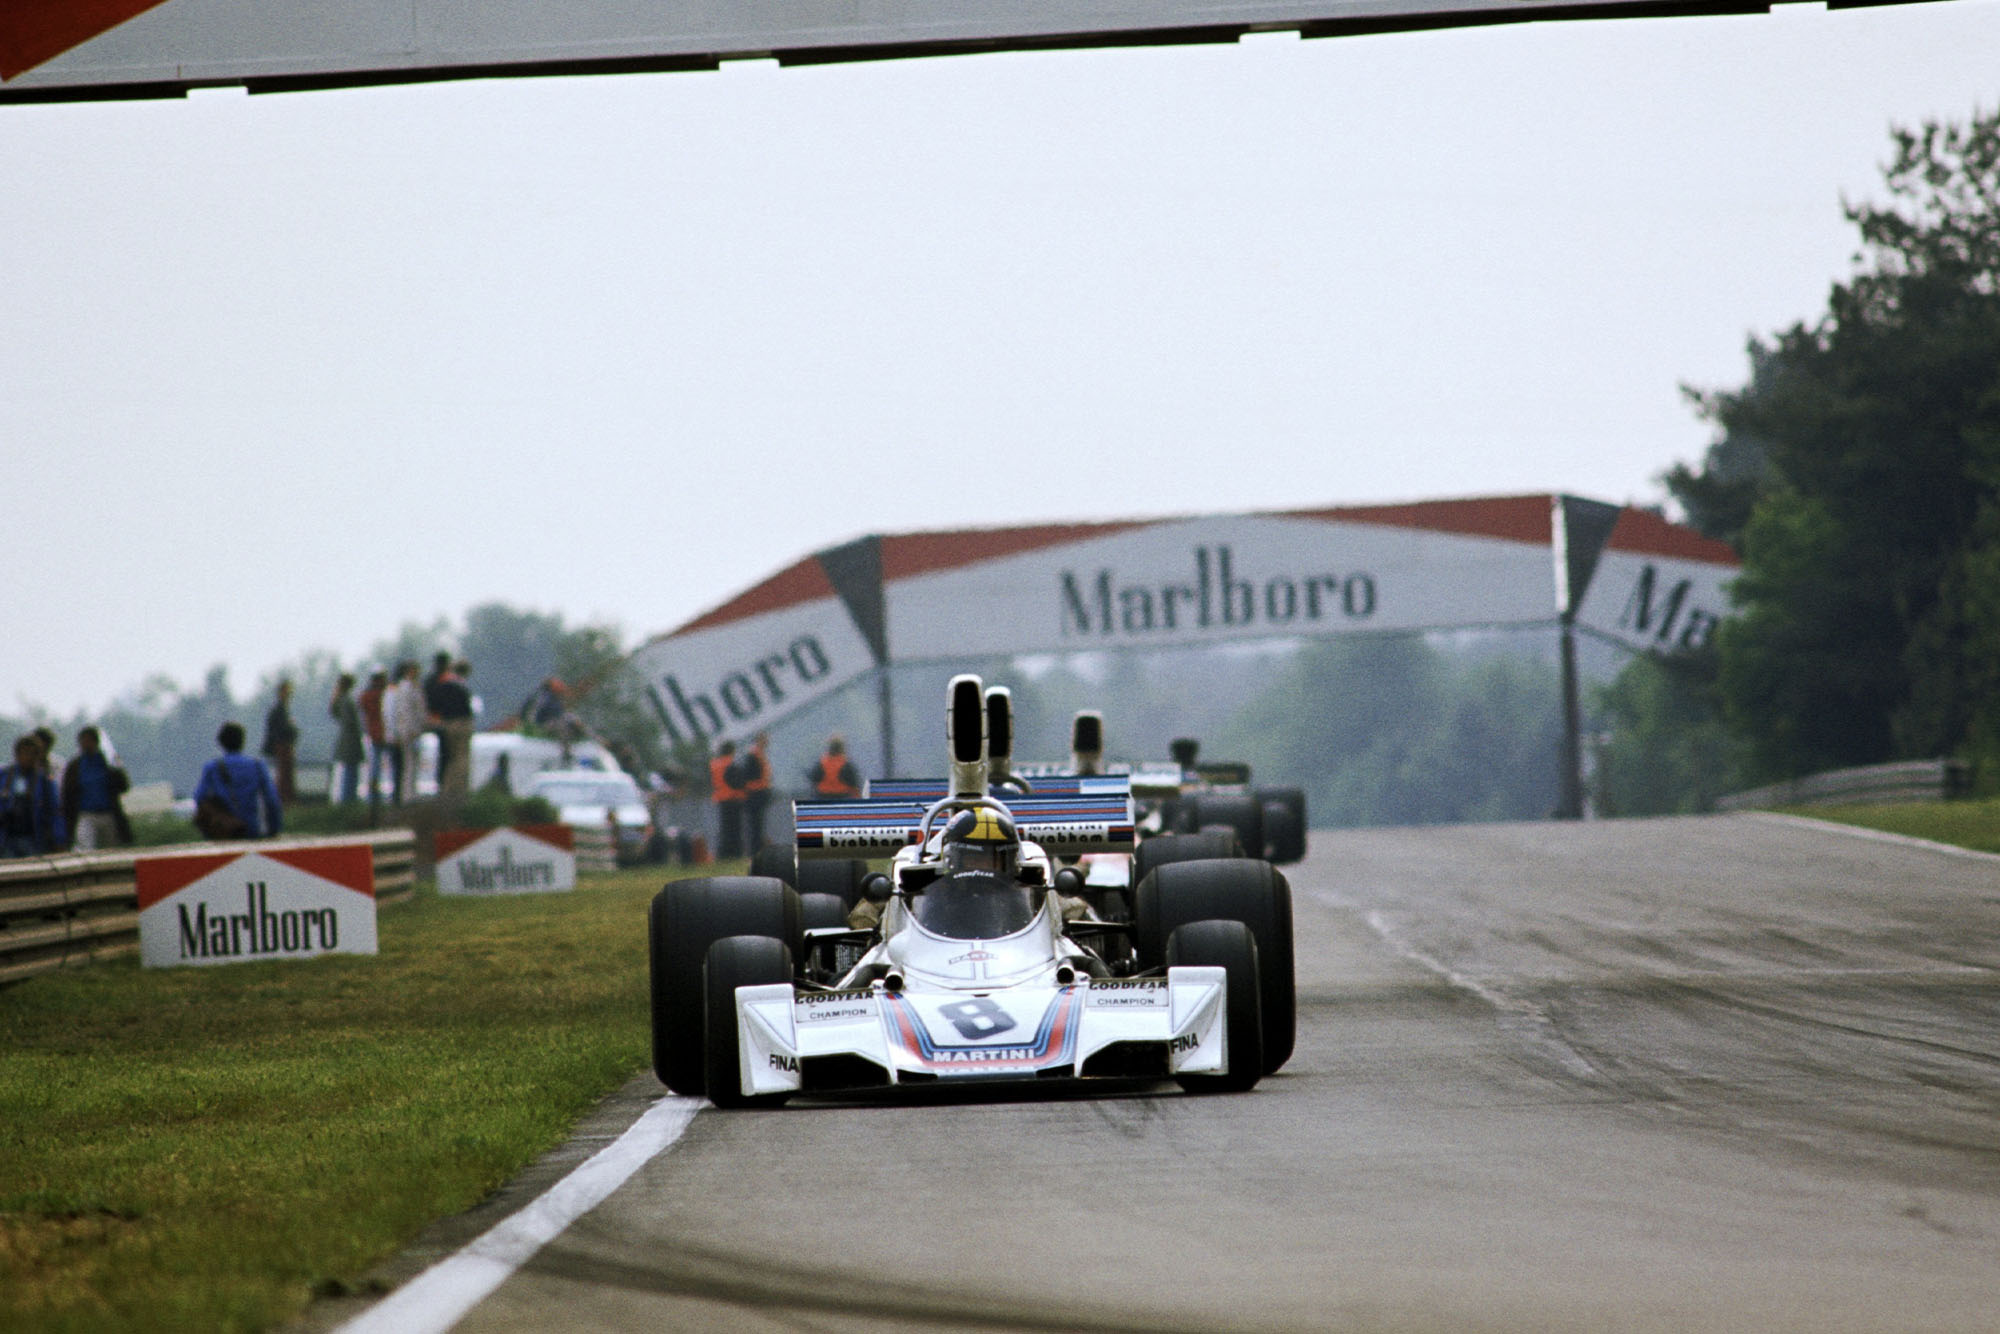 Carlos Pace (Brabham) competeing at the 1975 Belgian Grand Prix, Zolder.